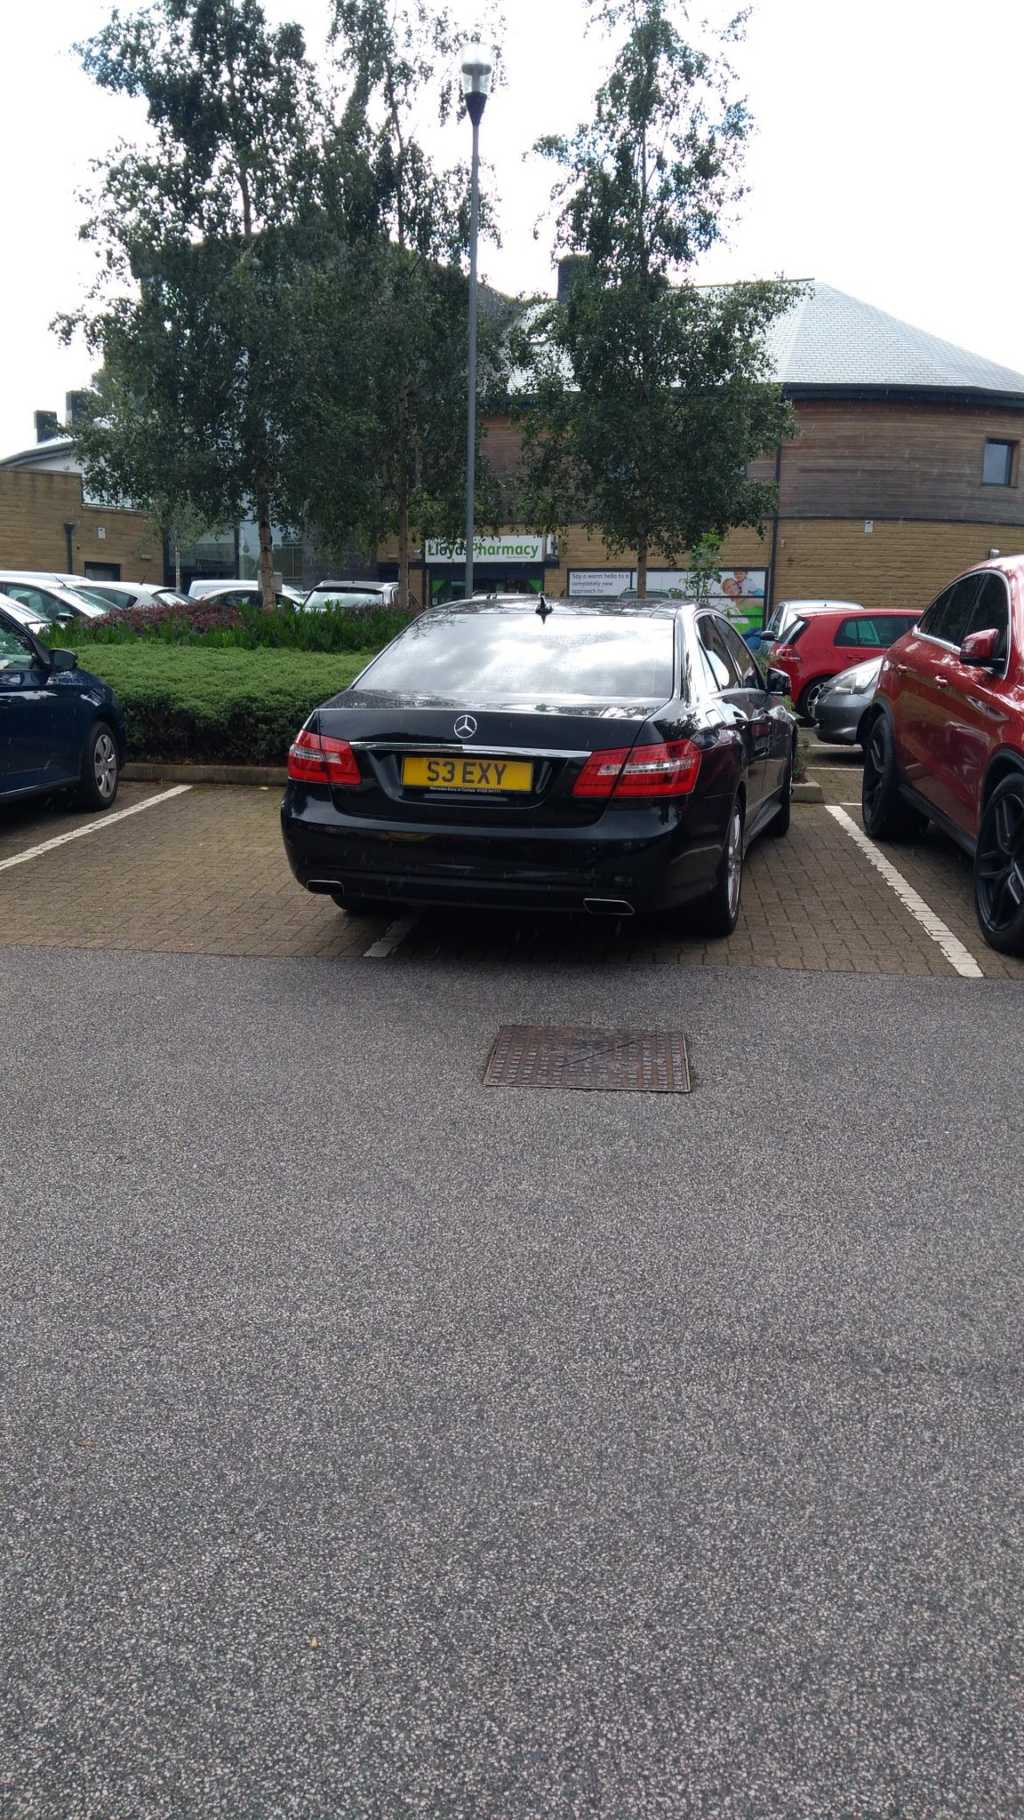 Selfish Parker S3 EXY